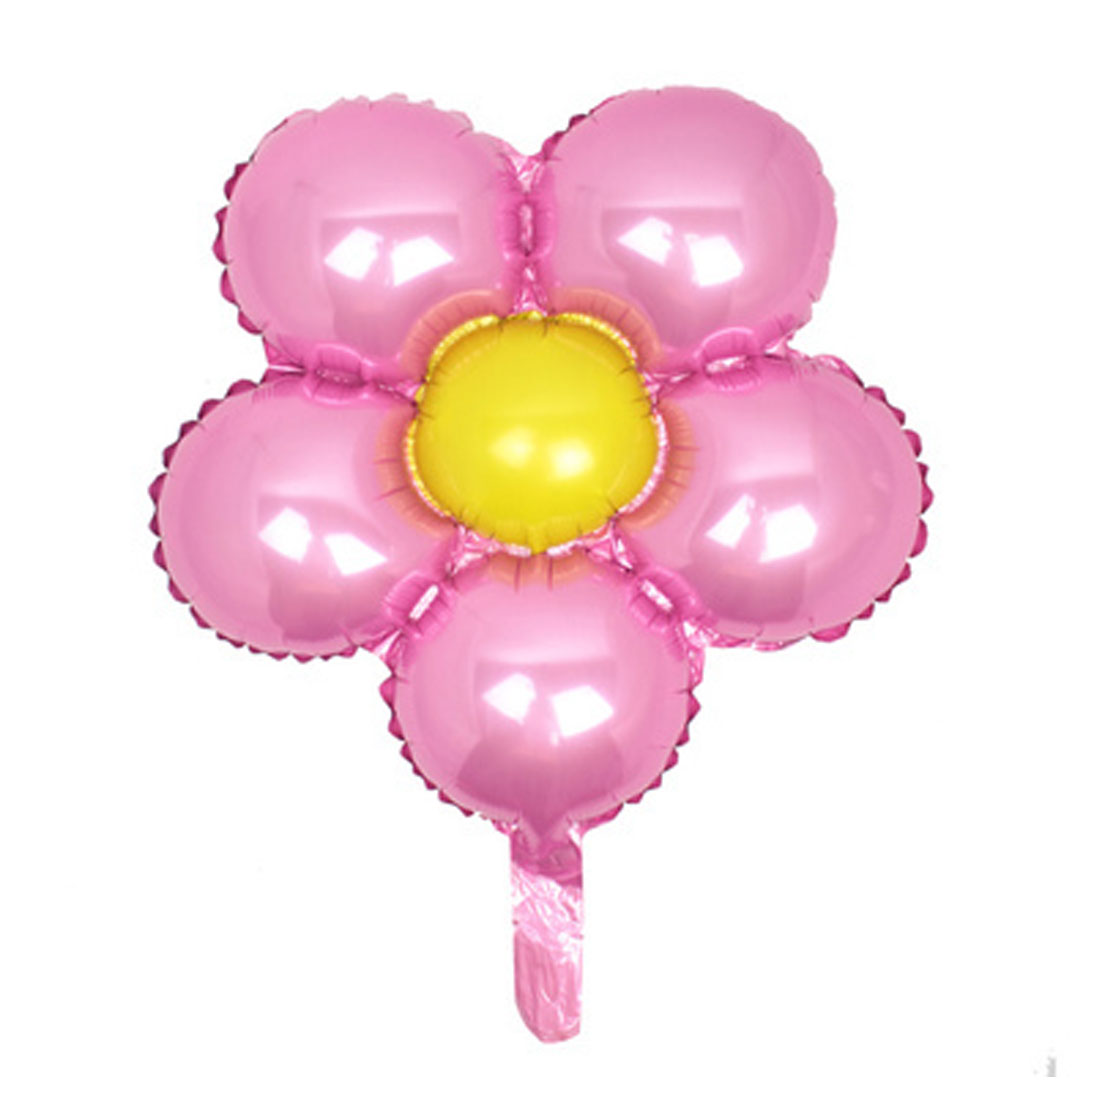 Foil Flower Design Balloon Wedding Party Birthday Decoration Pink Yellow 18""